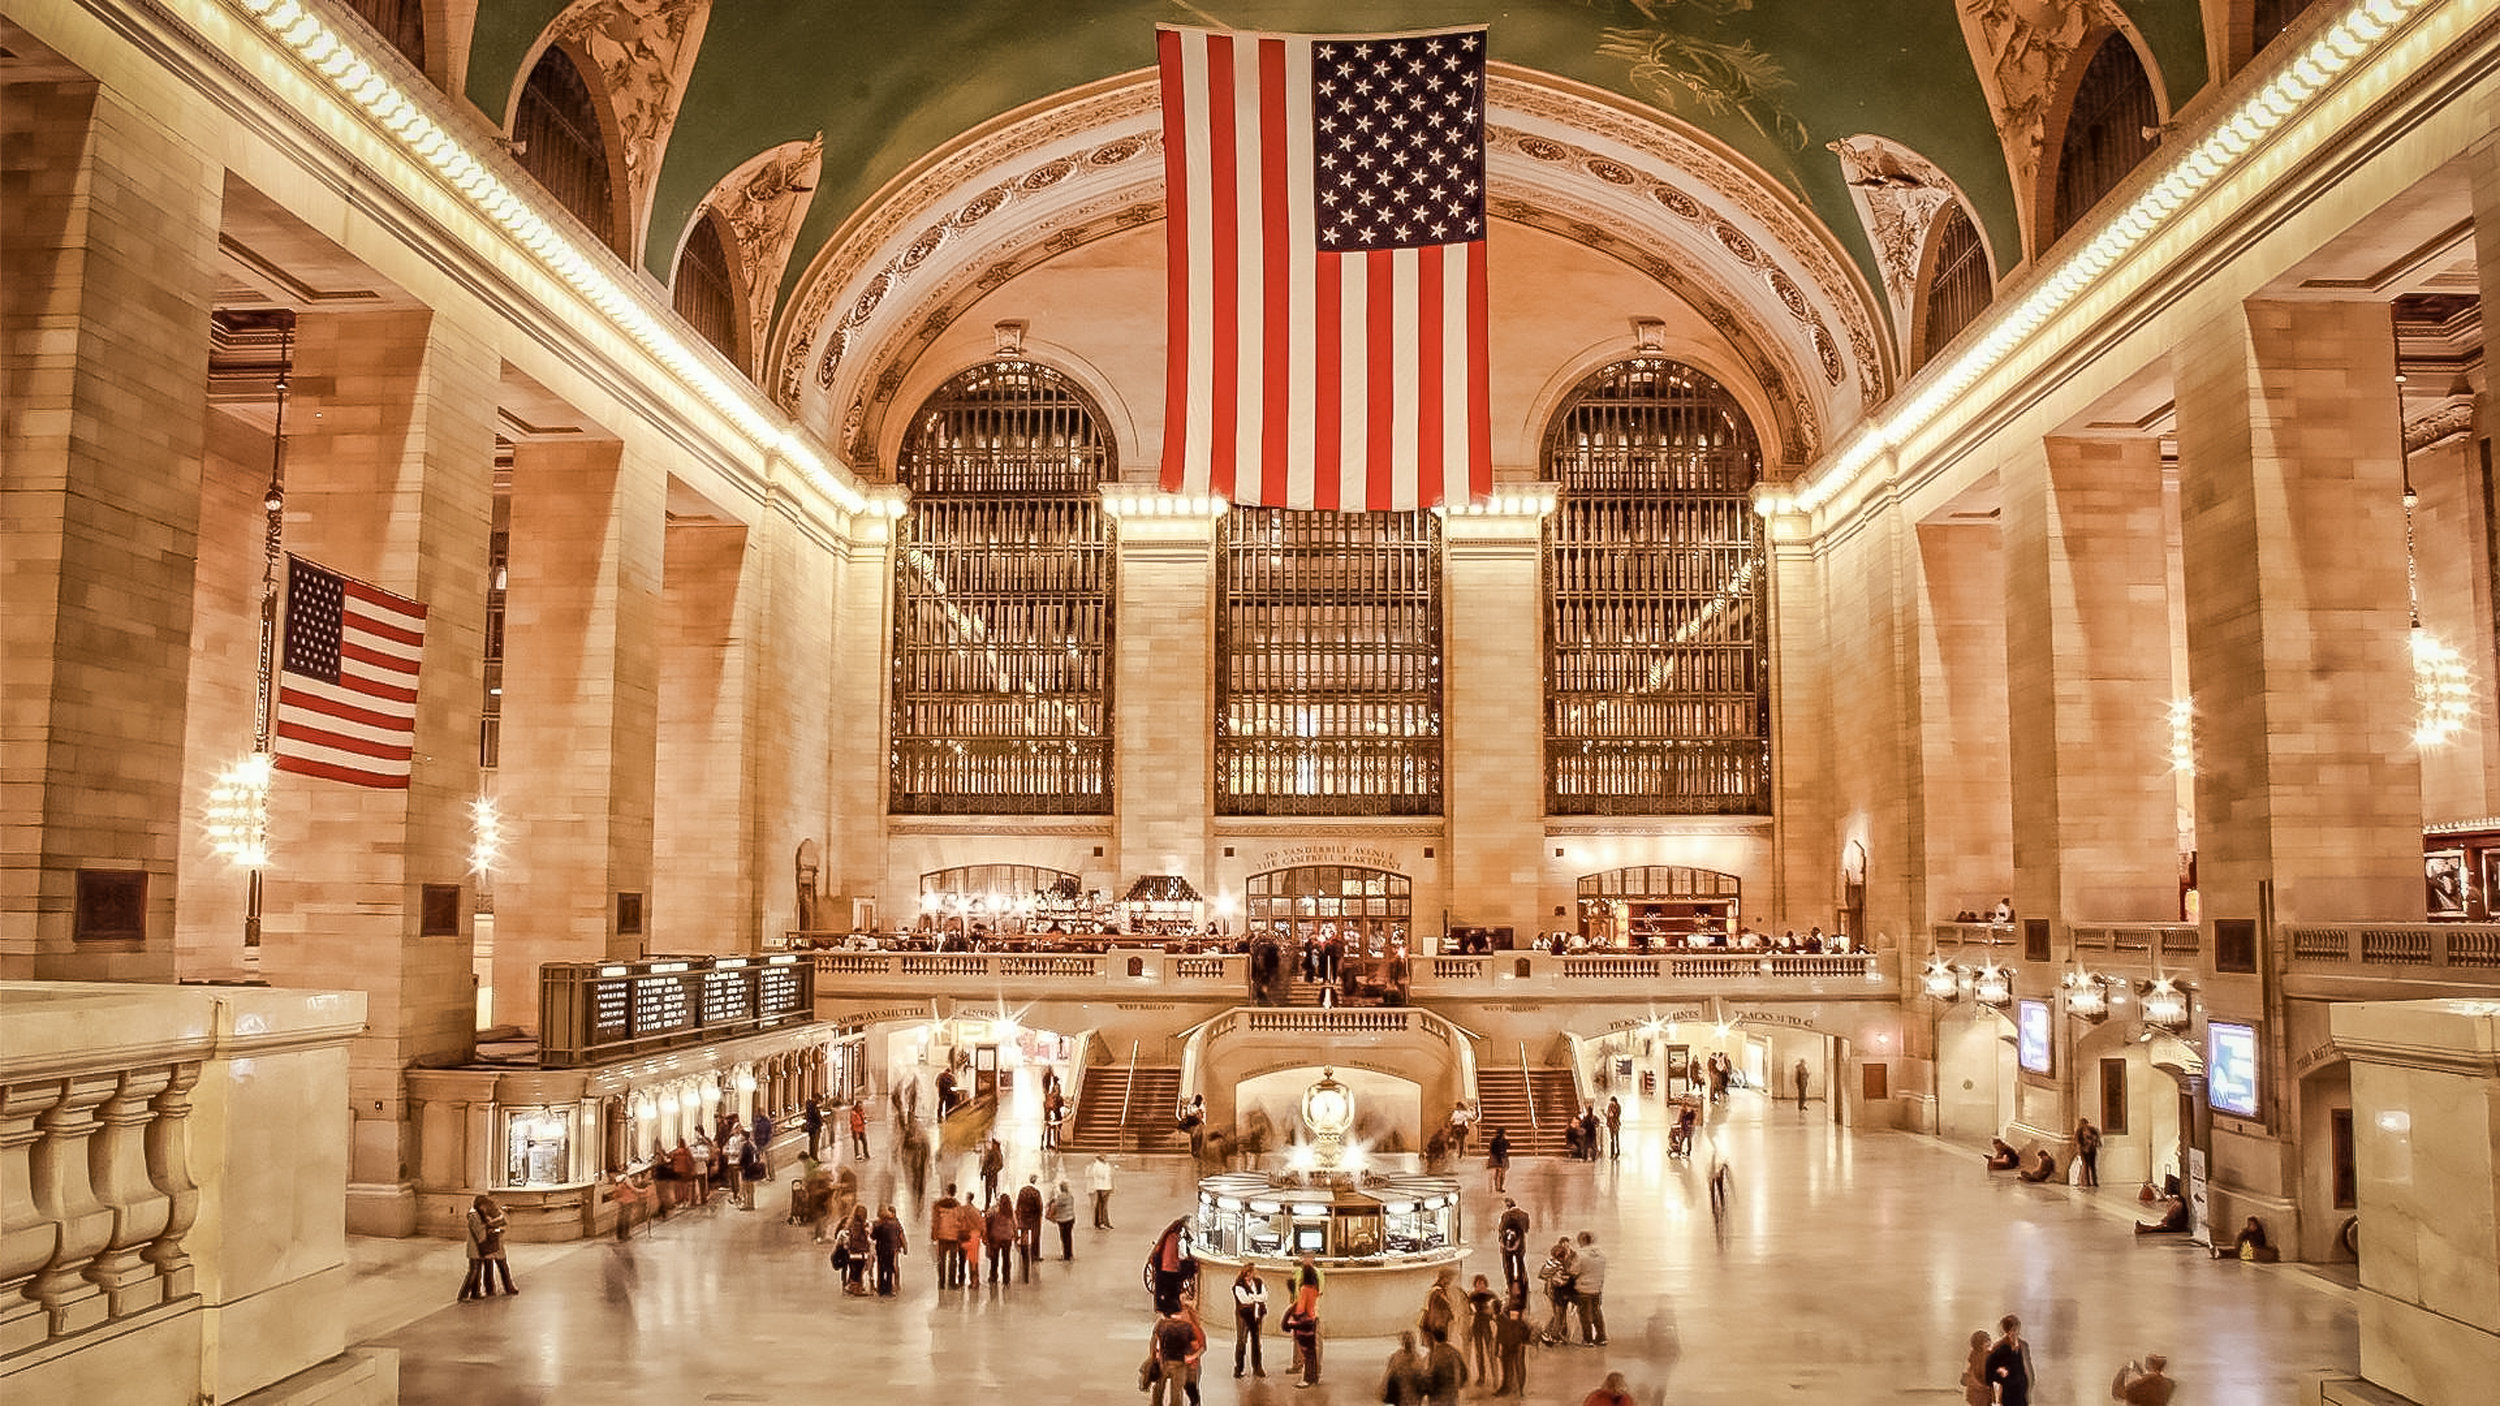 GRAND CENTRAL TERMINAL, MAIN CONCOURSE. PHOTO: LUCAS COMPAN